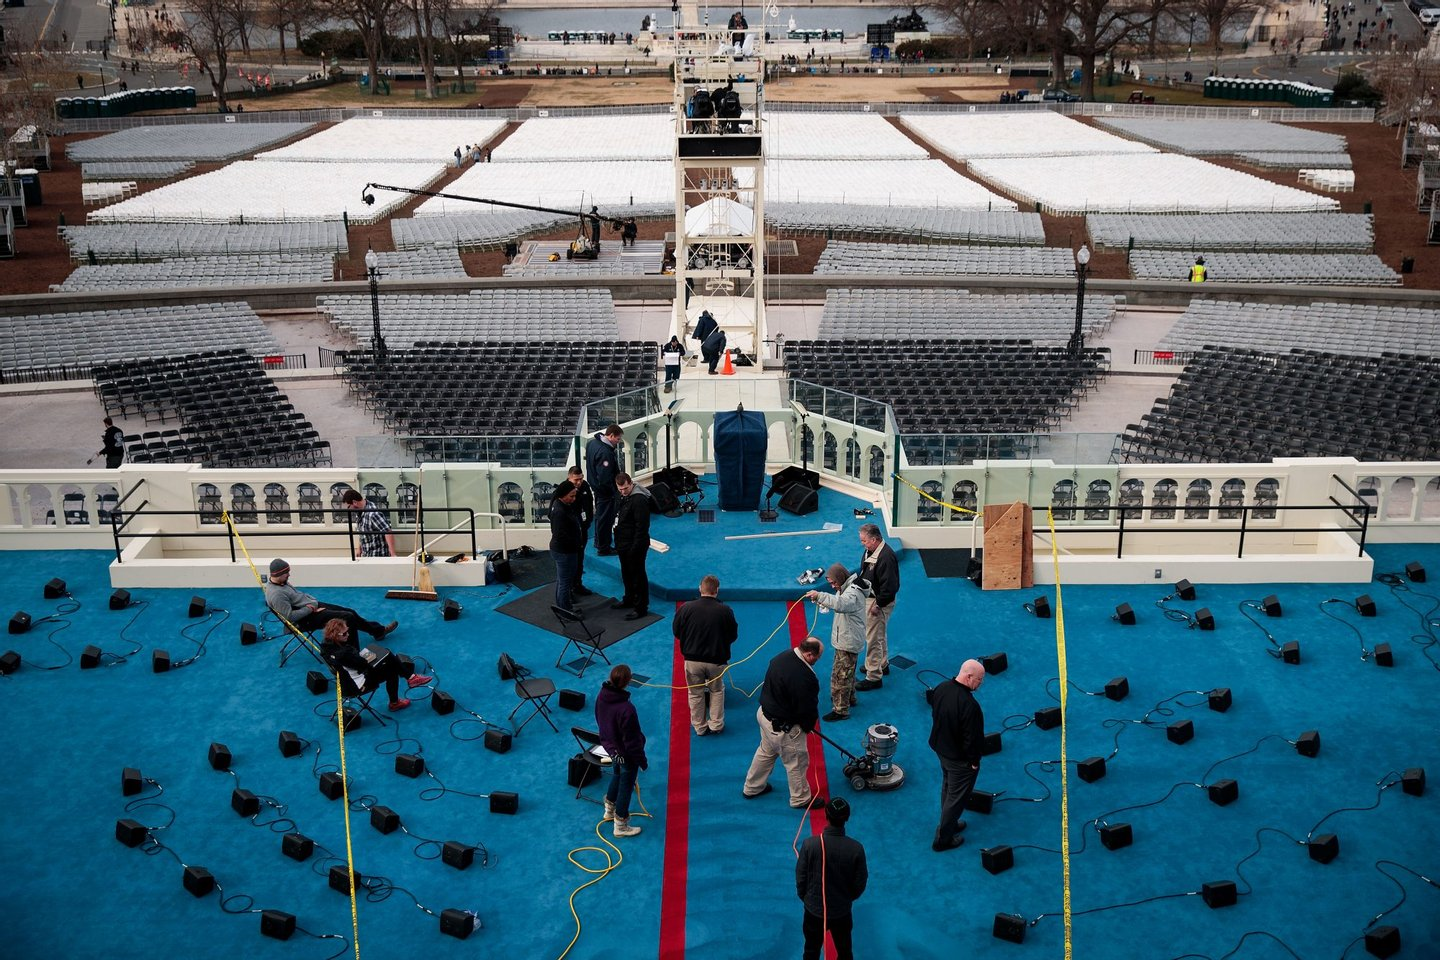 WASHINGTON, DC - JANUARY 19: Workers prepare the platform stage on the West Front of the U.S. Capitol one day before the presidential inauguration, January 19, 2017 in Washington. DC. Trump will be inaugurated as the 45th U.S. President on Friday. (Photo by Drew Angerer/Getty Images)